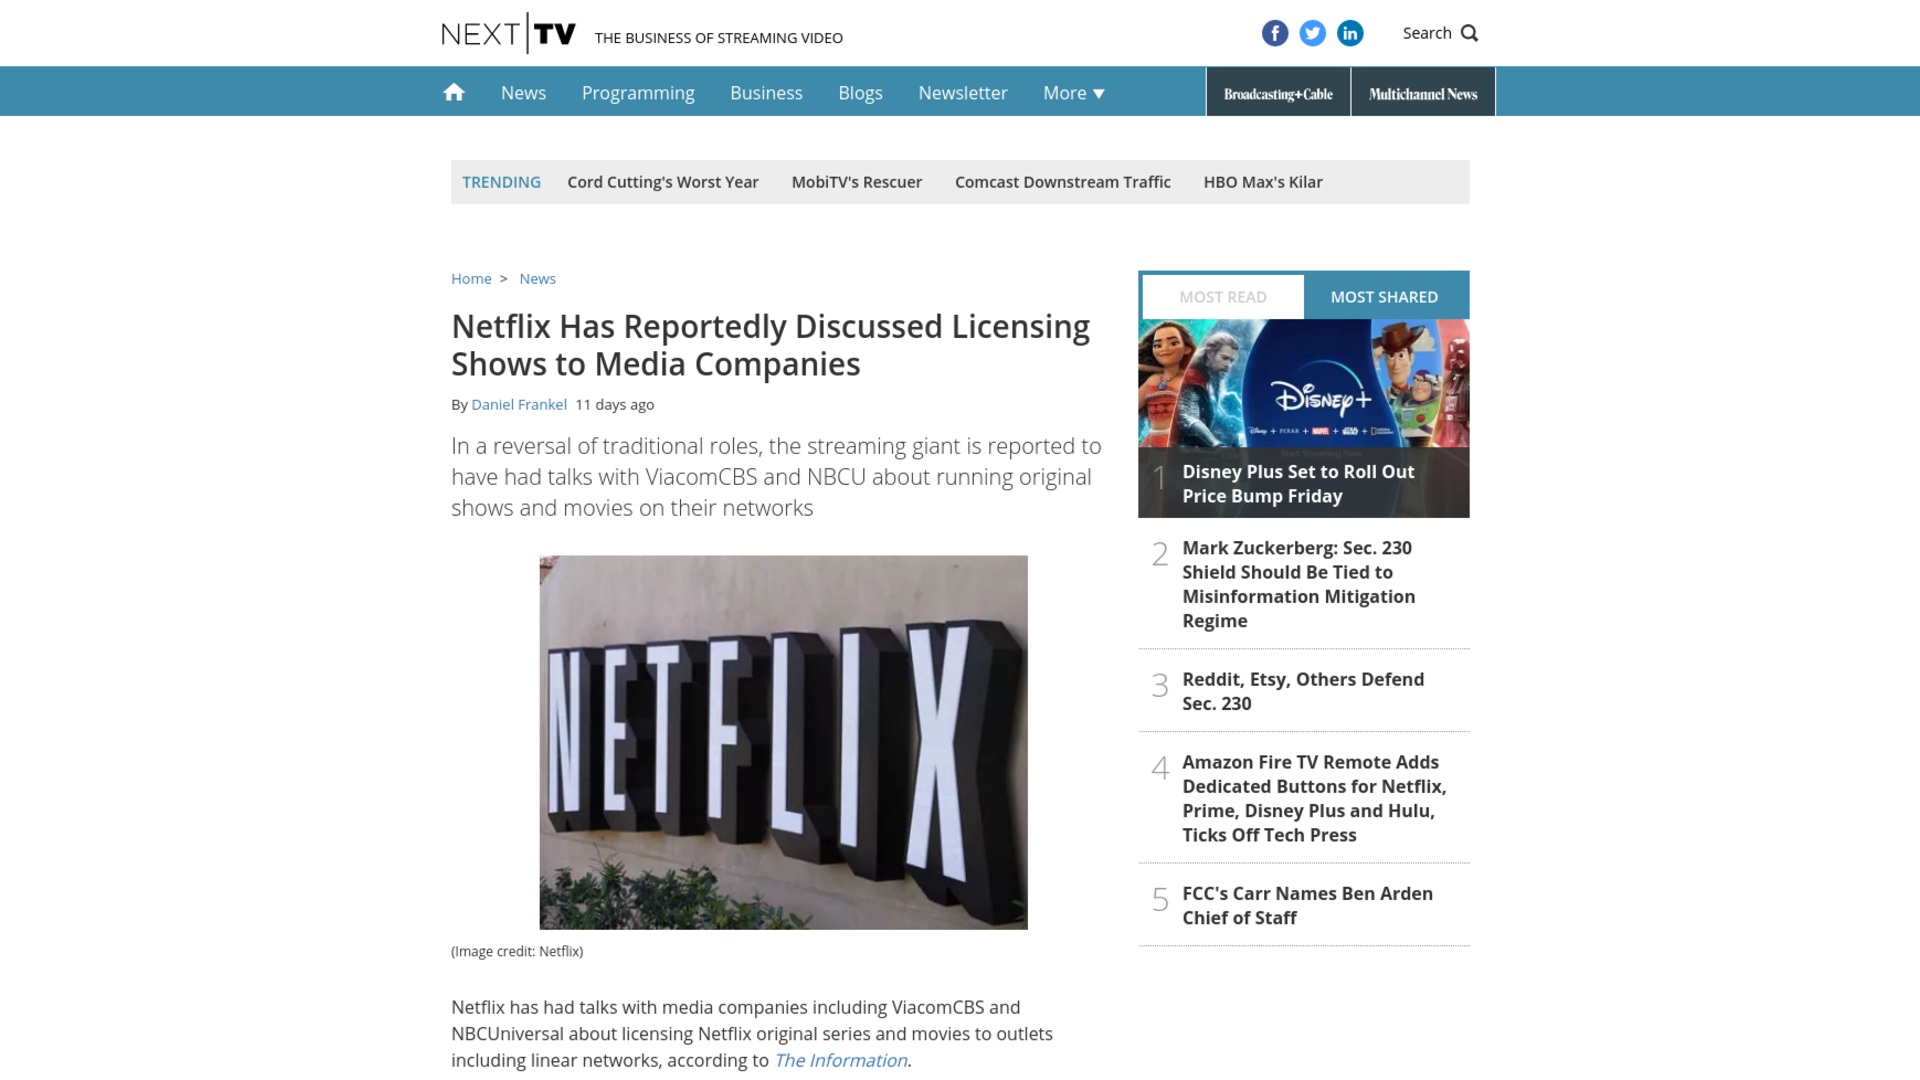 Fairness Rocks News Netflix Has Reportedly Discussed Licensing Shows to Media Companies